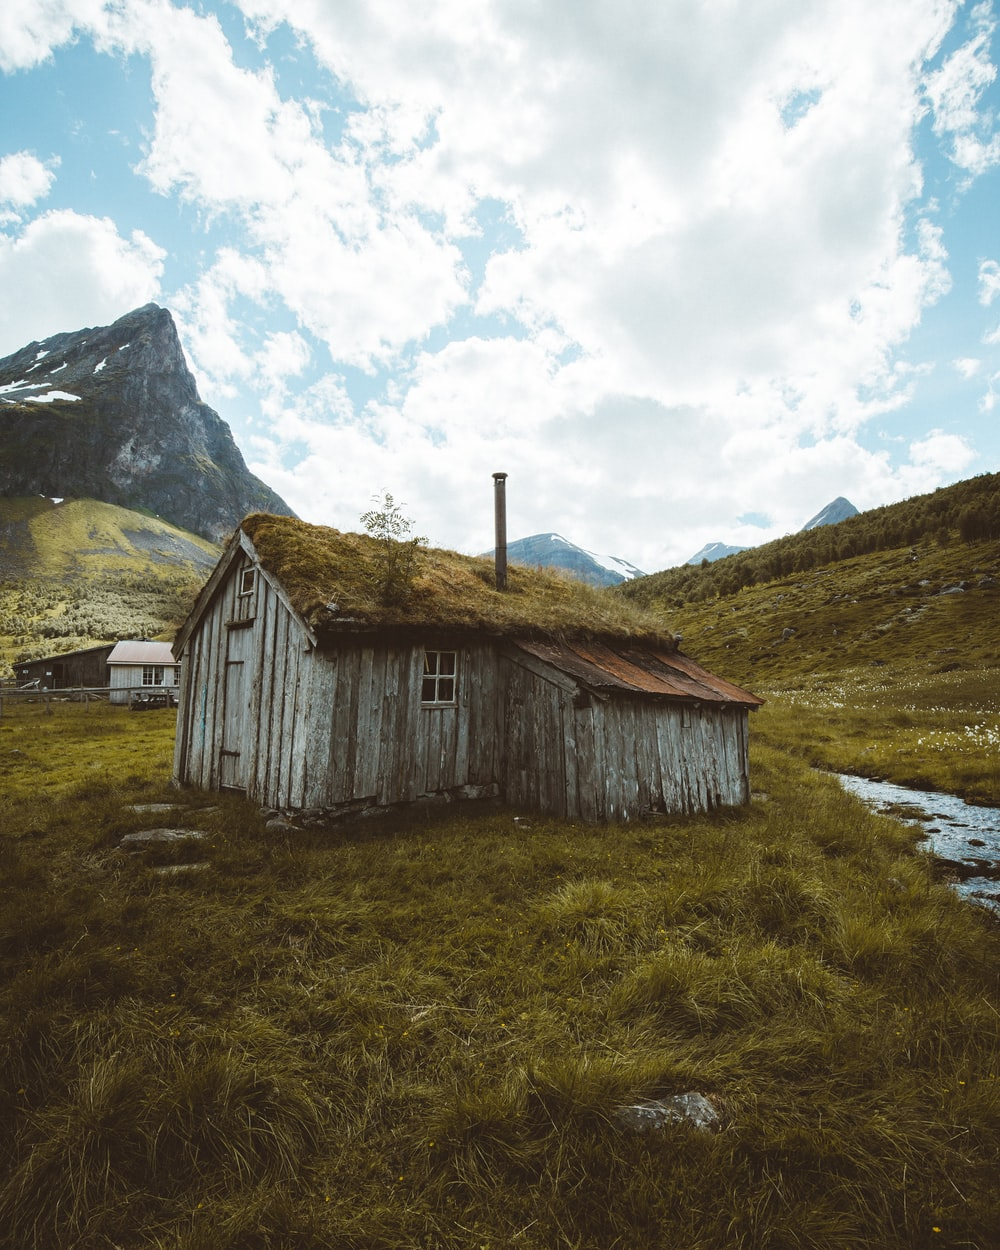 brown wooden house on green grass field near mountain under white clouds during daytime